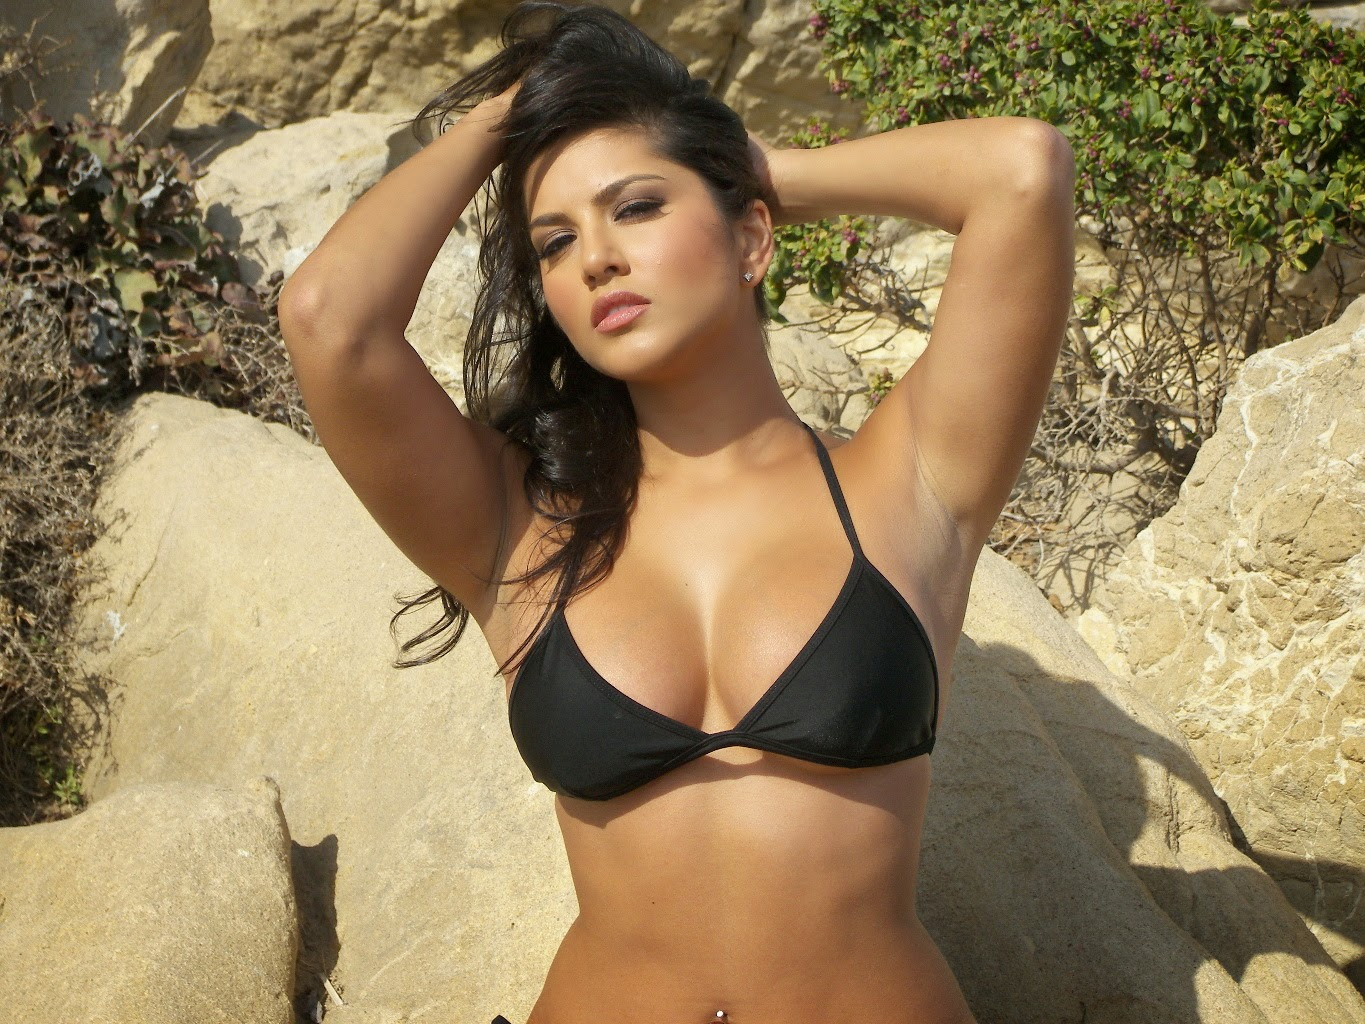 sunny leone hot sexy pictures and wallpaper youtube playboy